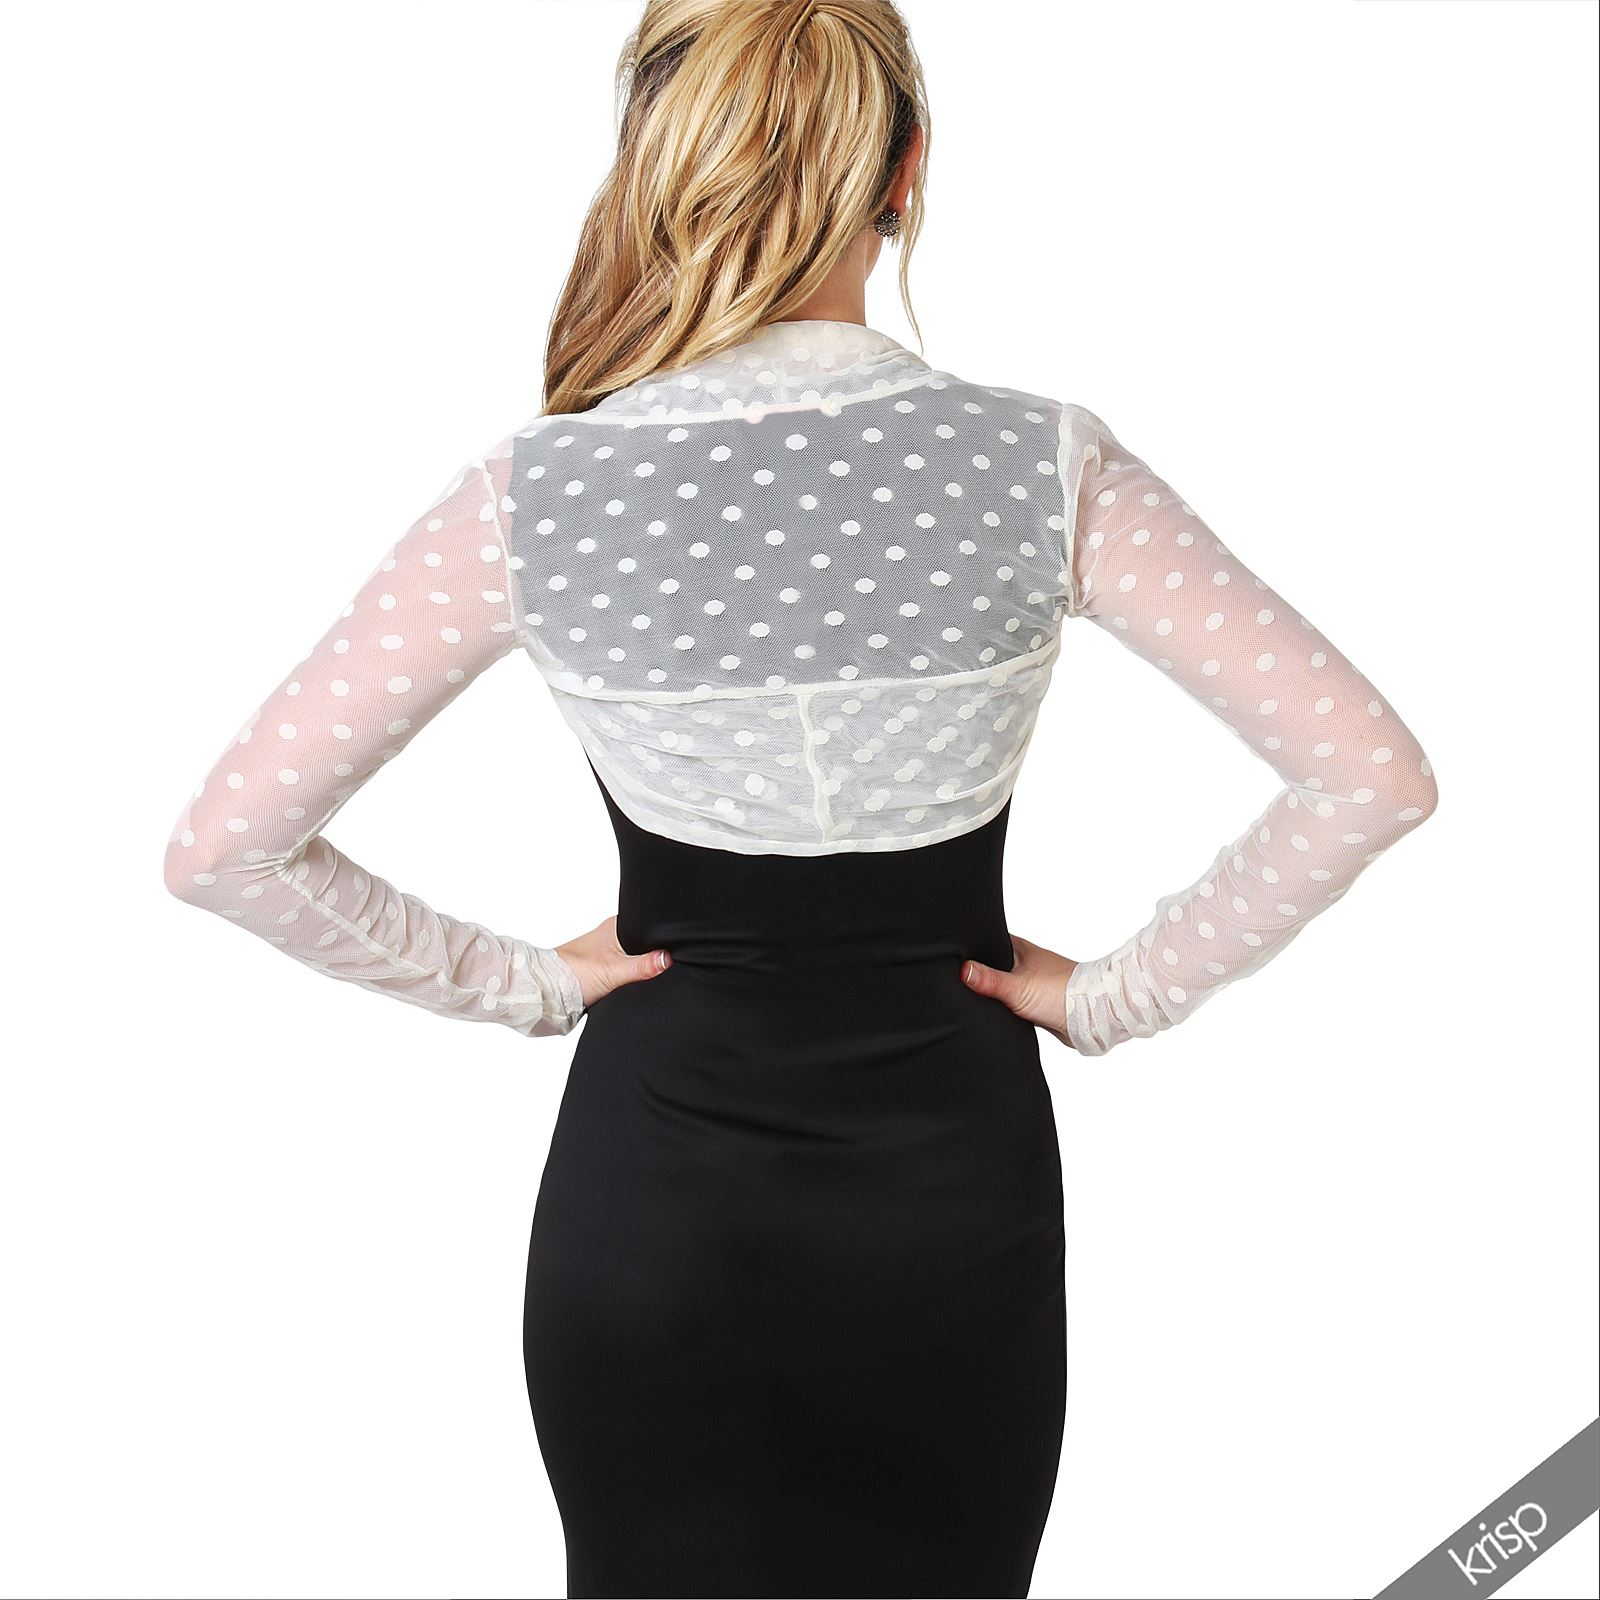 Wedding jackets, bridesmaid jackets, special event formal jackets and softhome24.ml carries a wide variety of highest quality Satin Finish Bolero Jackets, Georgette Bolero Jackets, Sheer or Georgette shawls and wraps, Inexpensive Long sleeve and Short sleeve lacy embroidered bolero jackets.